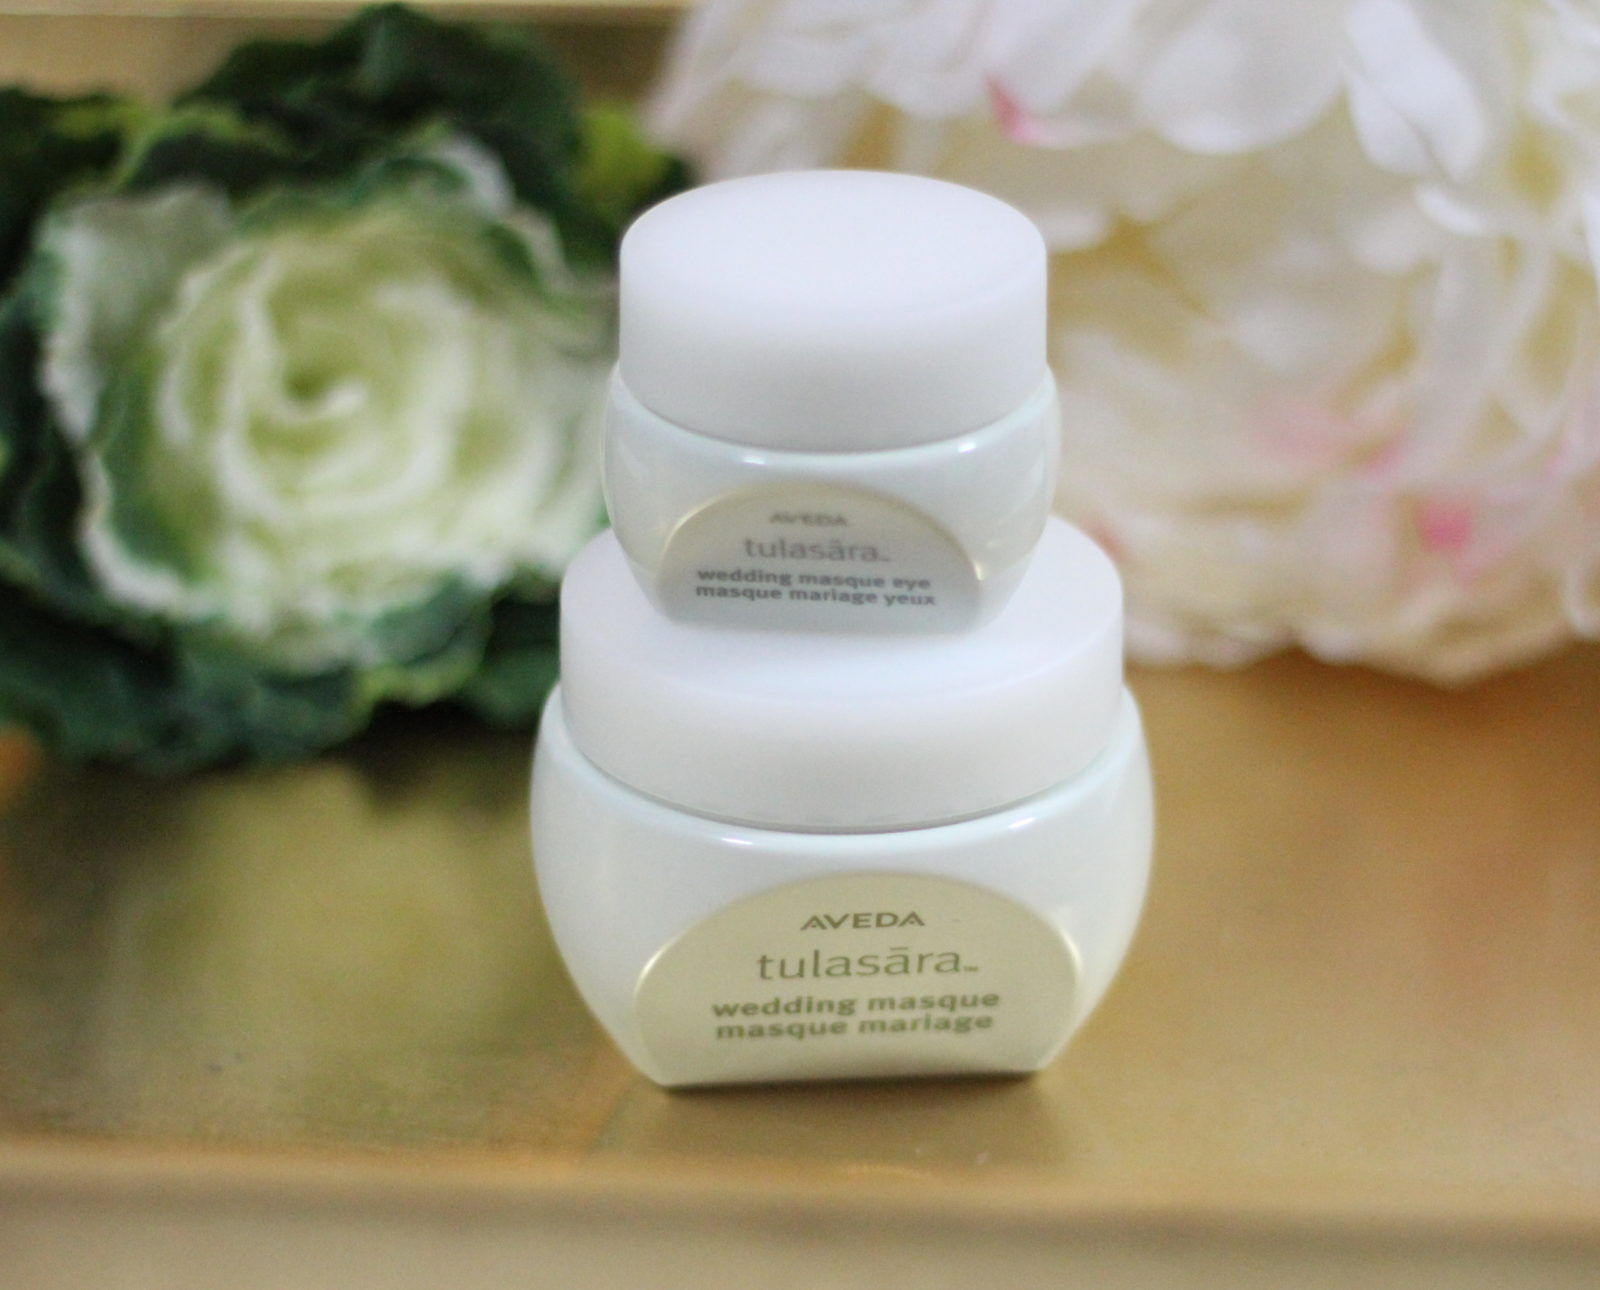 Aveda Tulasara Wedding Masque and Wedding Masque Eye